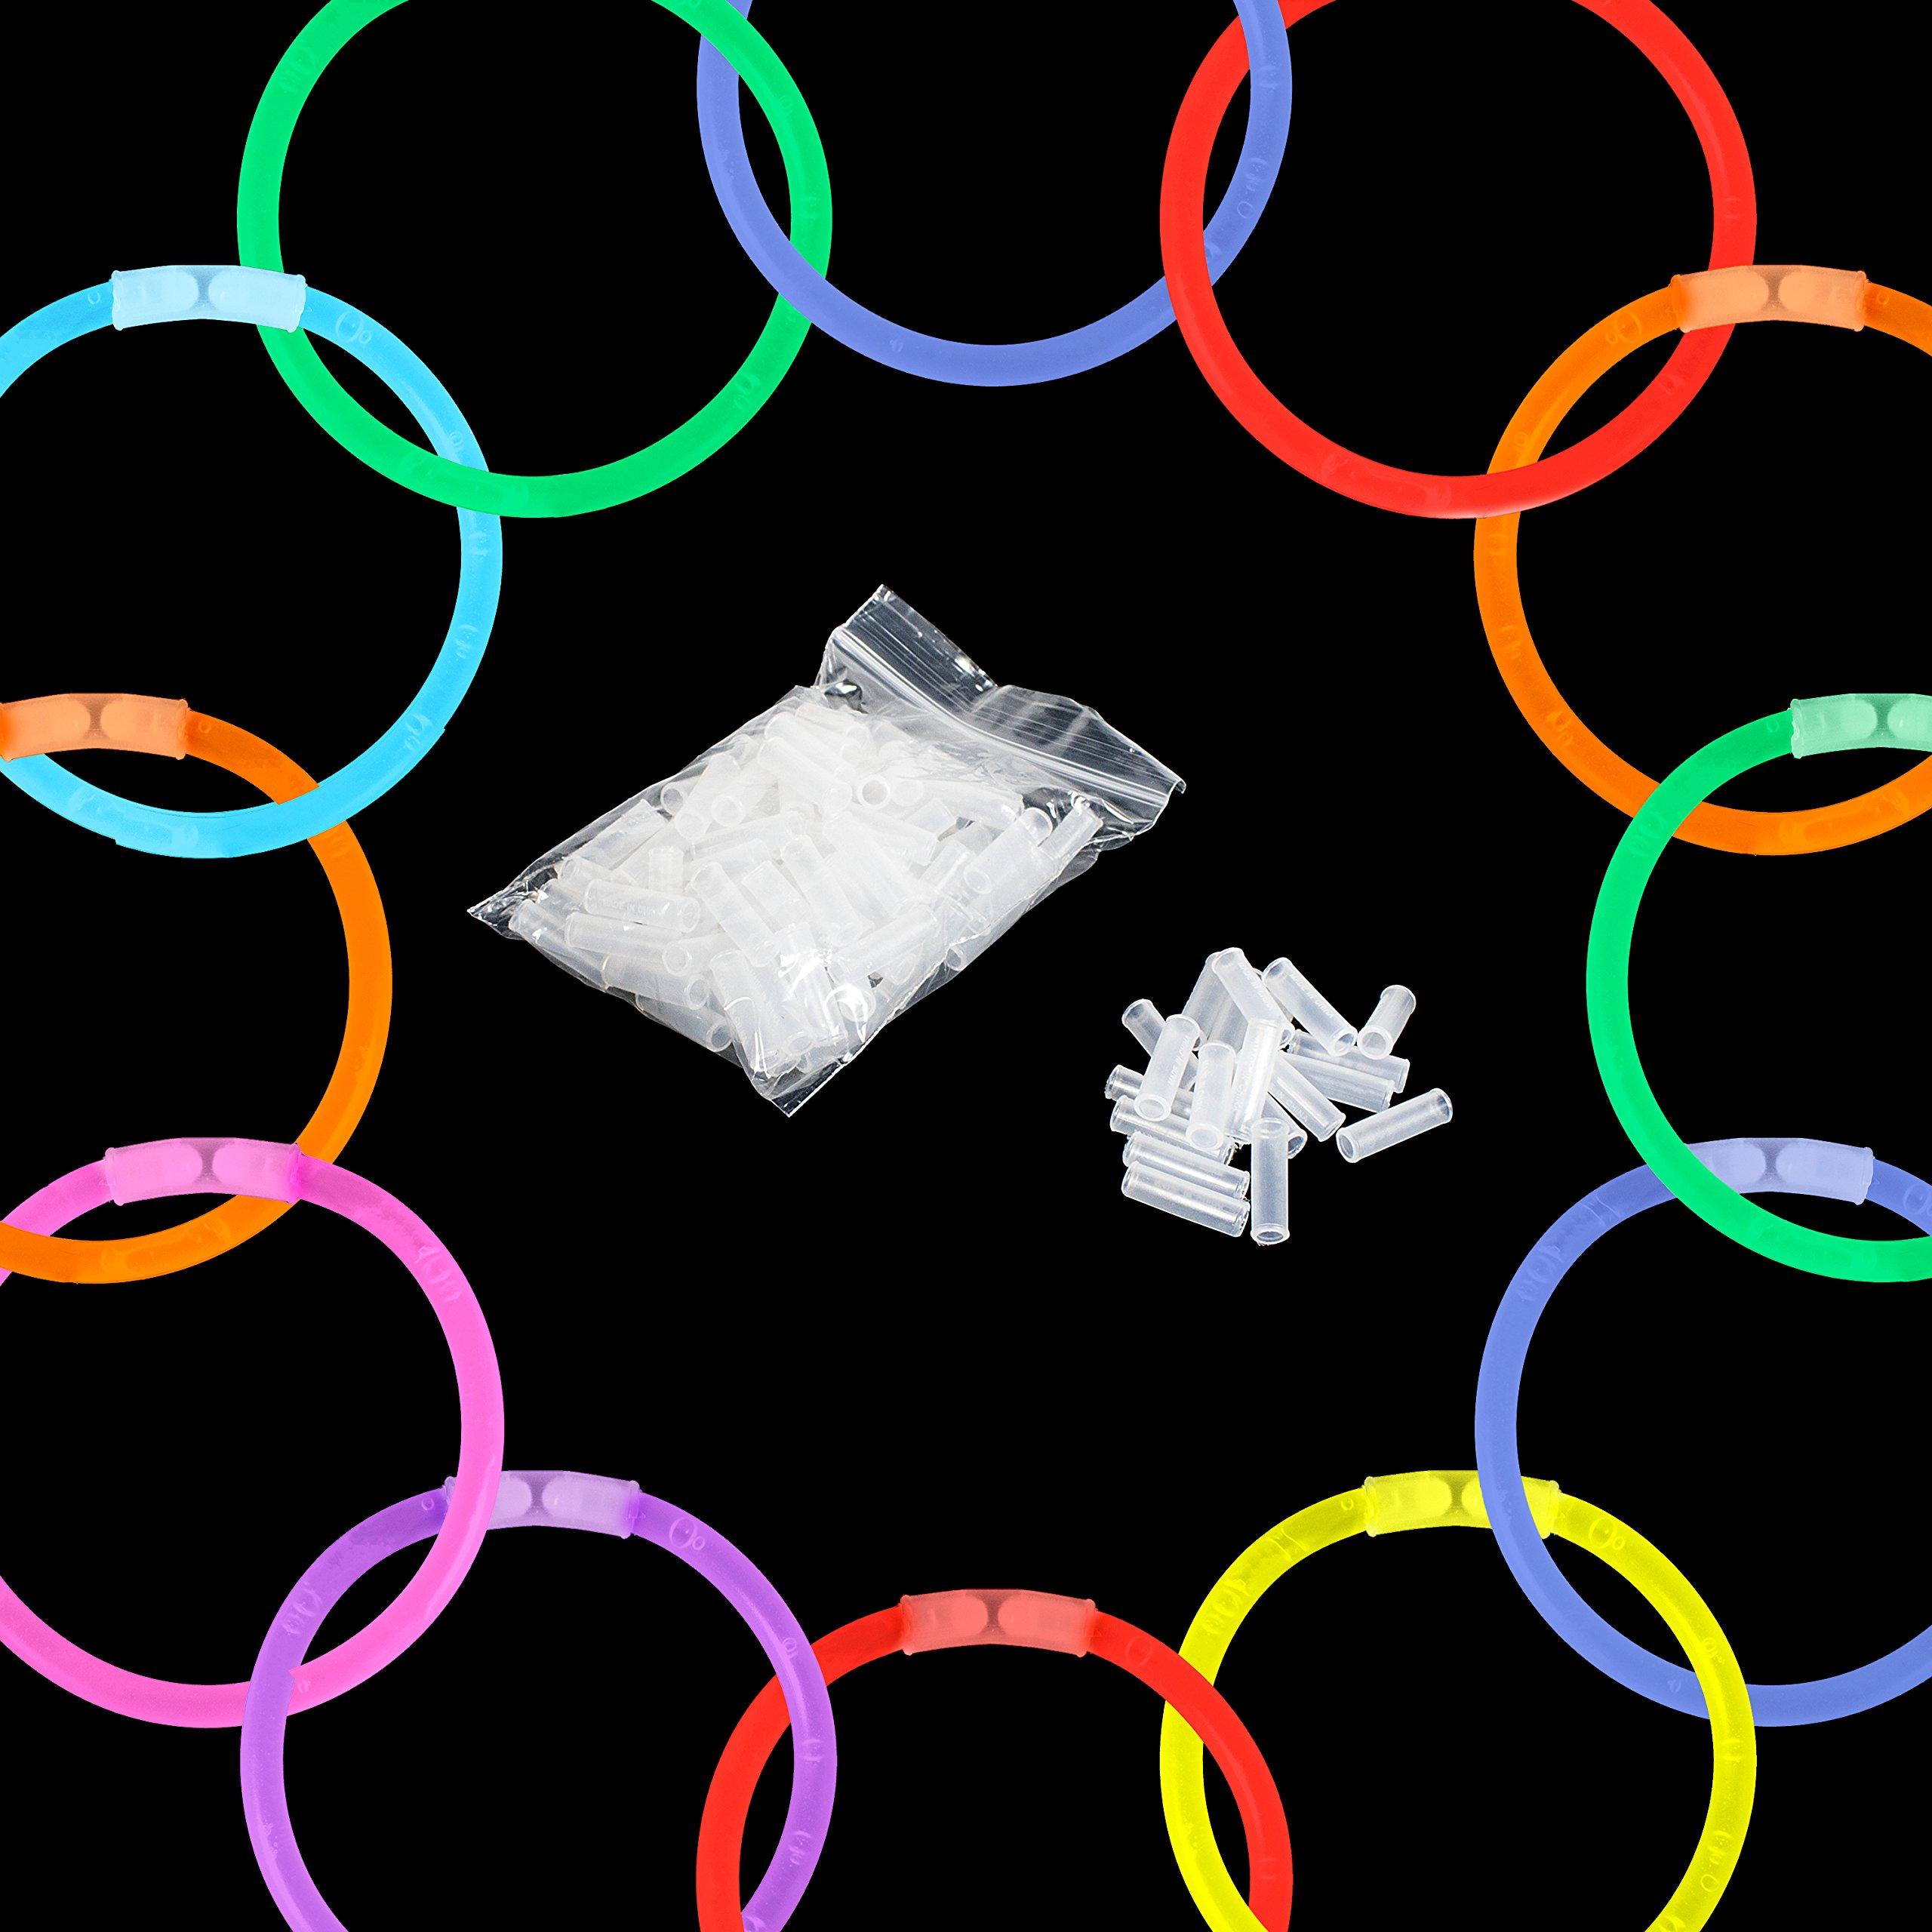 Lumistick Glow Sticks Variety Pack of Glowing Party Favors Includes Necklaces, Bracelets and Glasses (Assorted, 200 Packs) by Lumistick (Image #7)